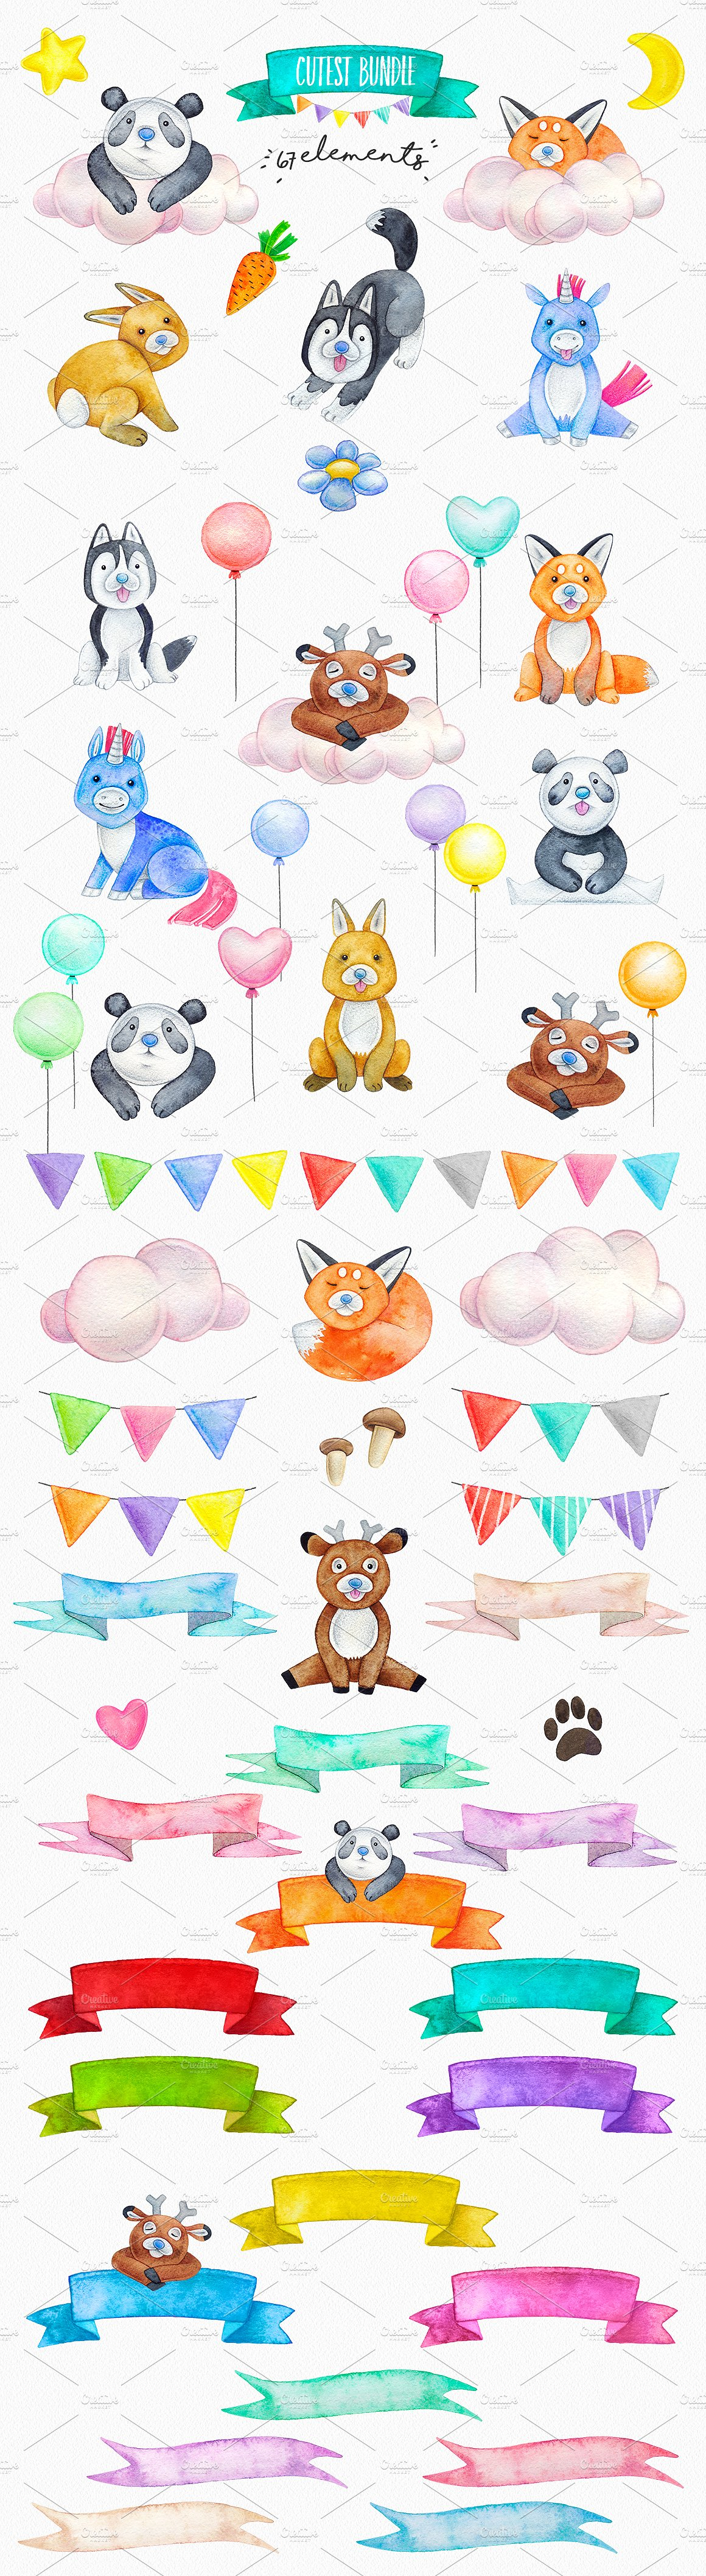 CUTE ANIMALS collection BABY SHOWER example image 3